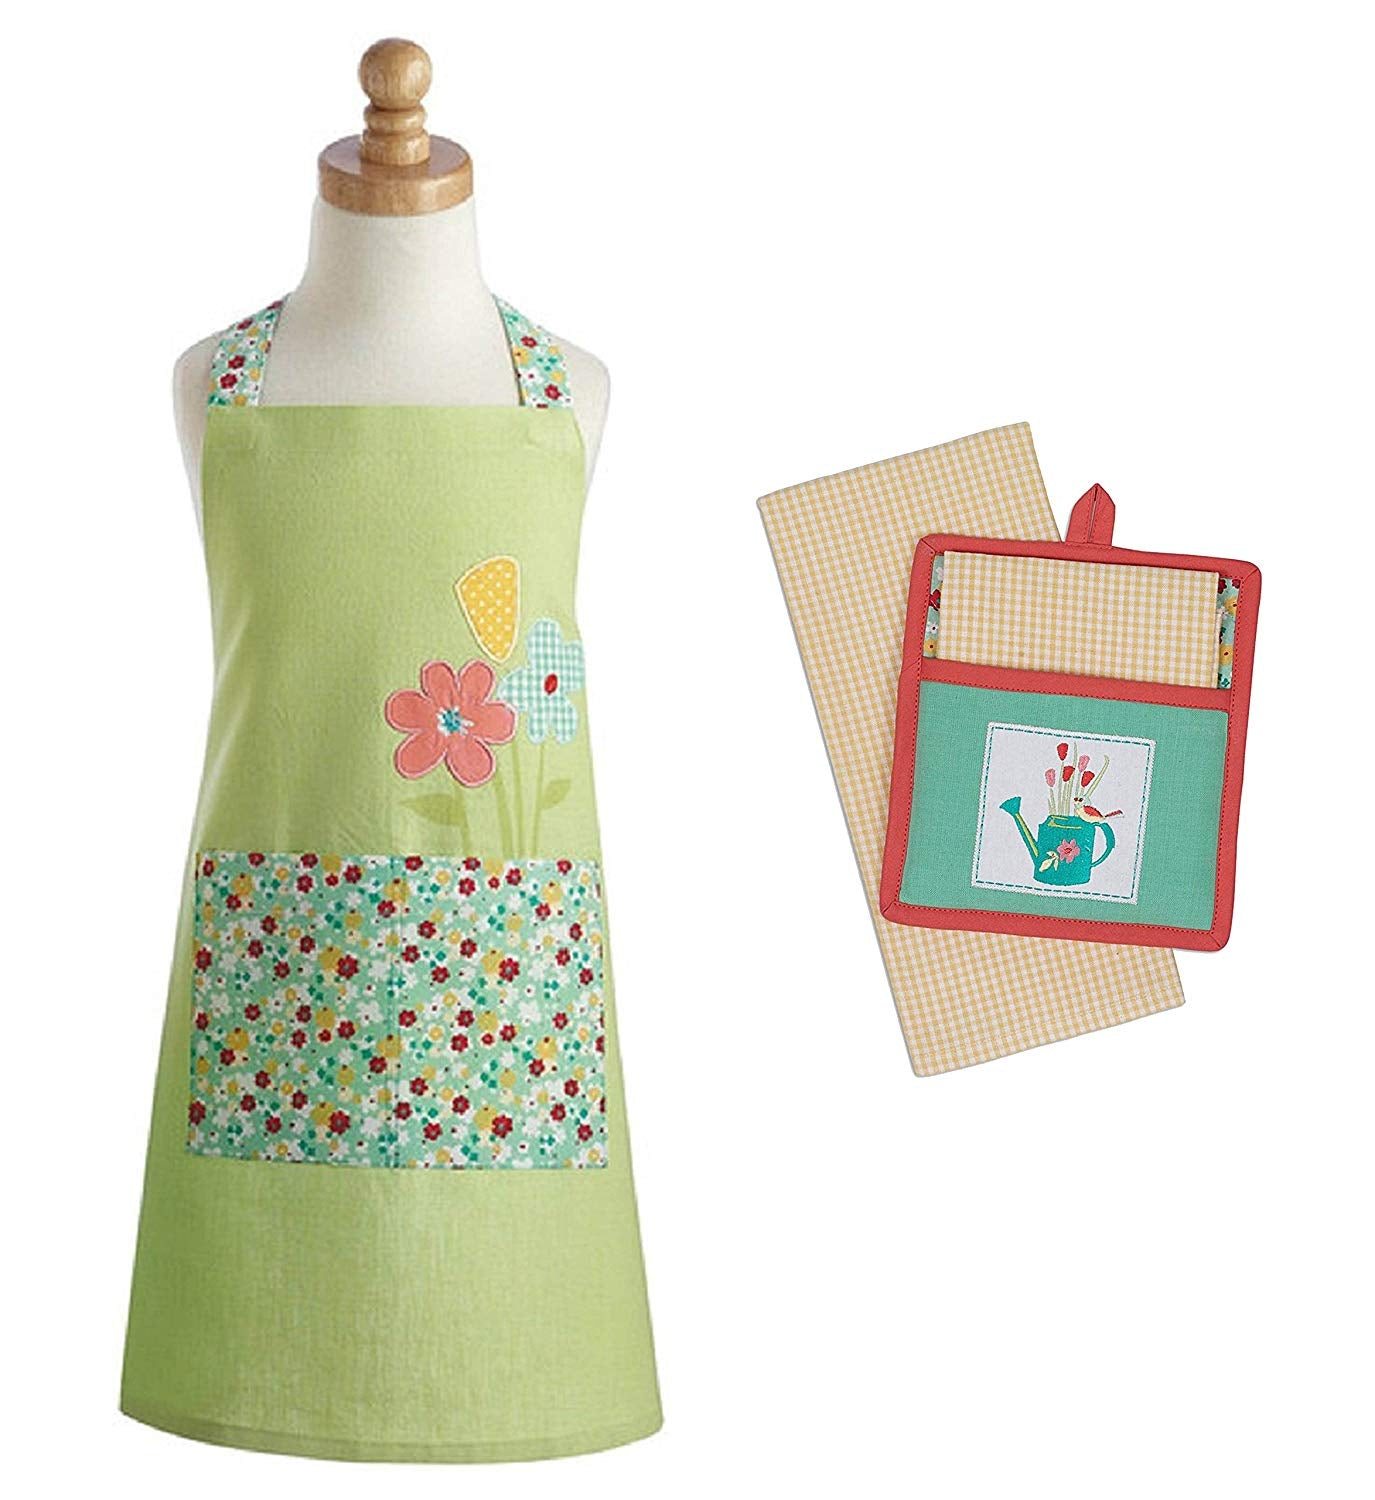 Chef Set for Kids - Green Embroidered Daisy Apron Floral Pocket with Potholder Kitchen Towel - Green Daisy